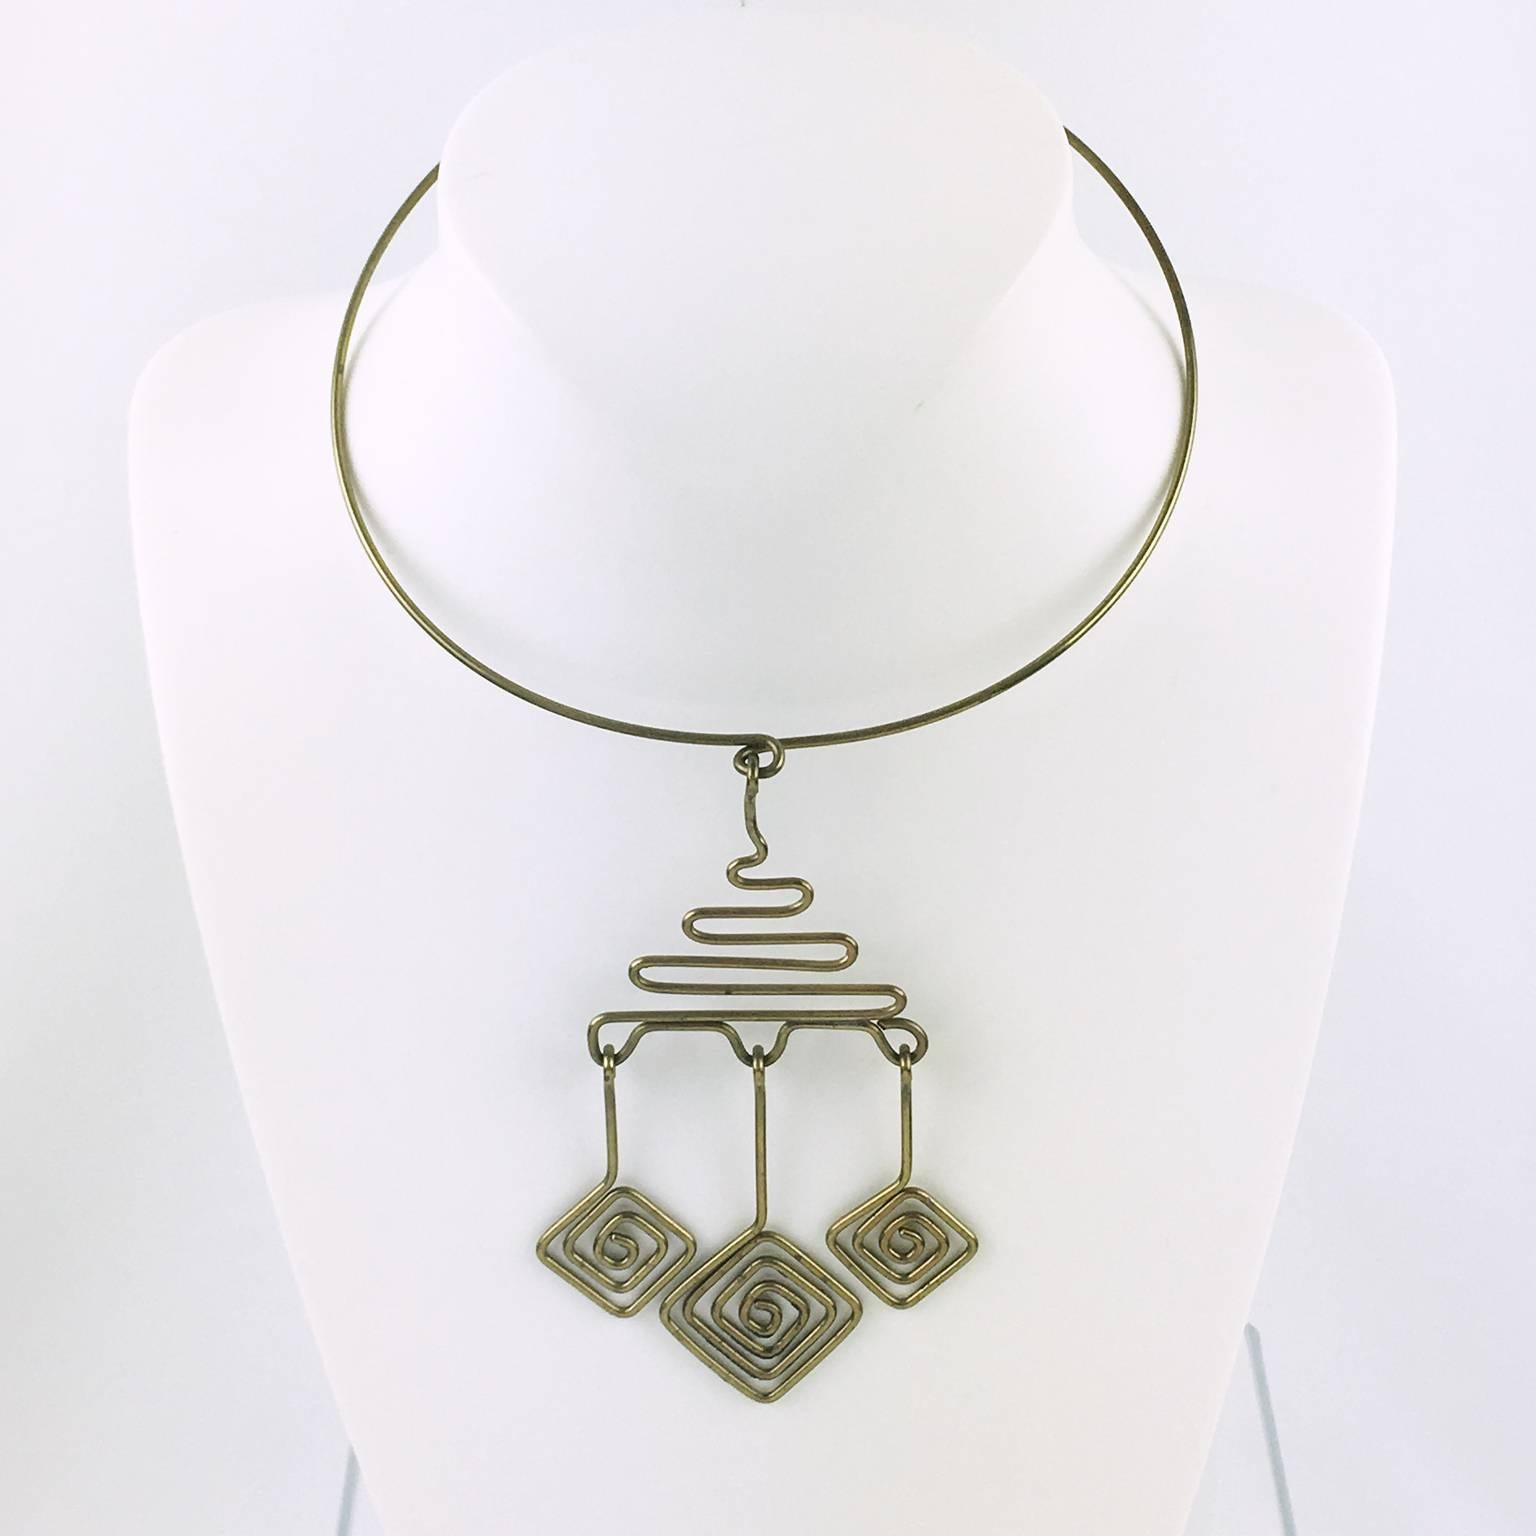 long scott brass necklaces adjustable kendra categories in tones lg jewel default jewelry june necklace